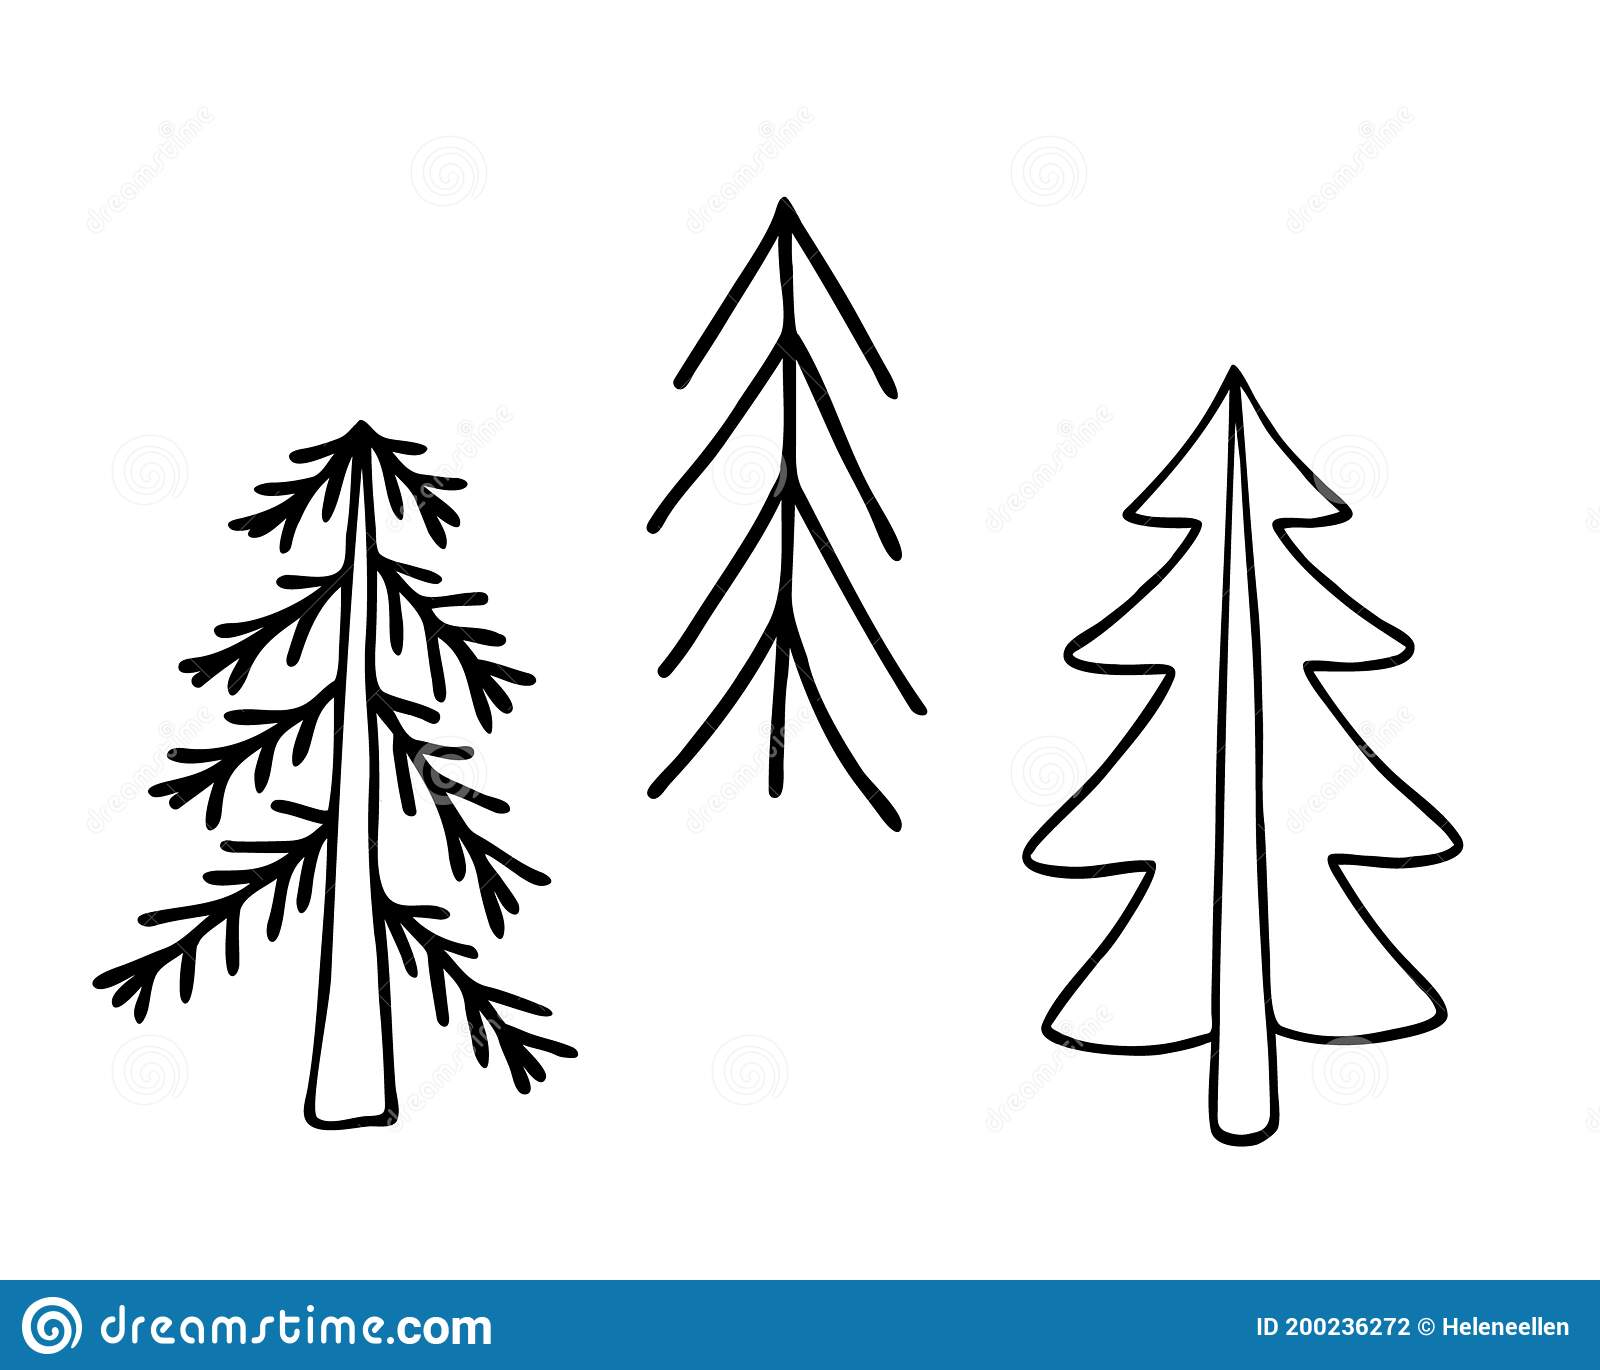 Simple Christmas Tree Hand Drawn In Doodle Style Minimalist Vector Outline Illustration Winter Holiday Decor Stock Vector Illustration Of Funny December 200236272